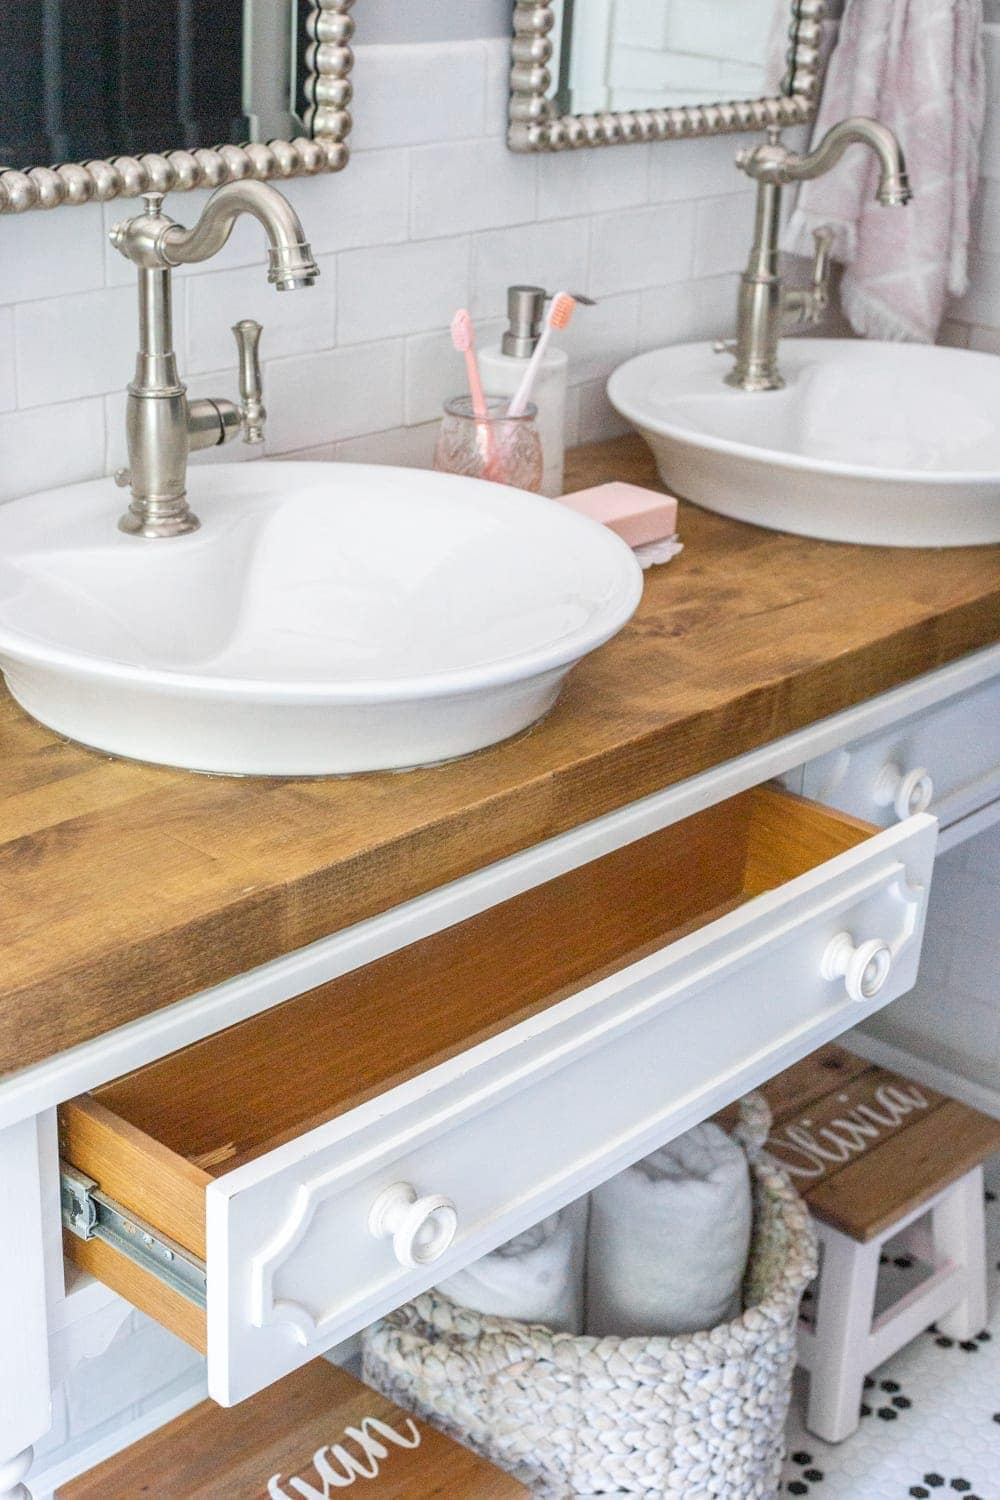 Girls' Bathroom Decor Details & Sources | Console table converted into a vanity with vessel sinks